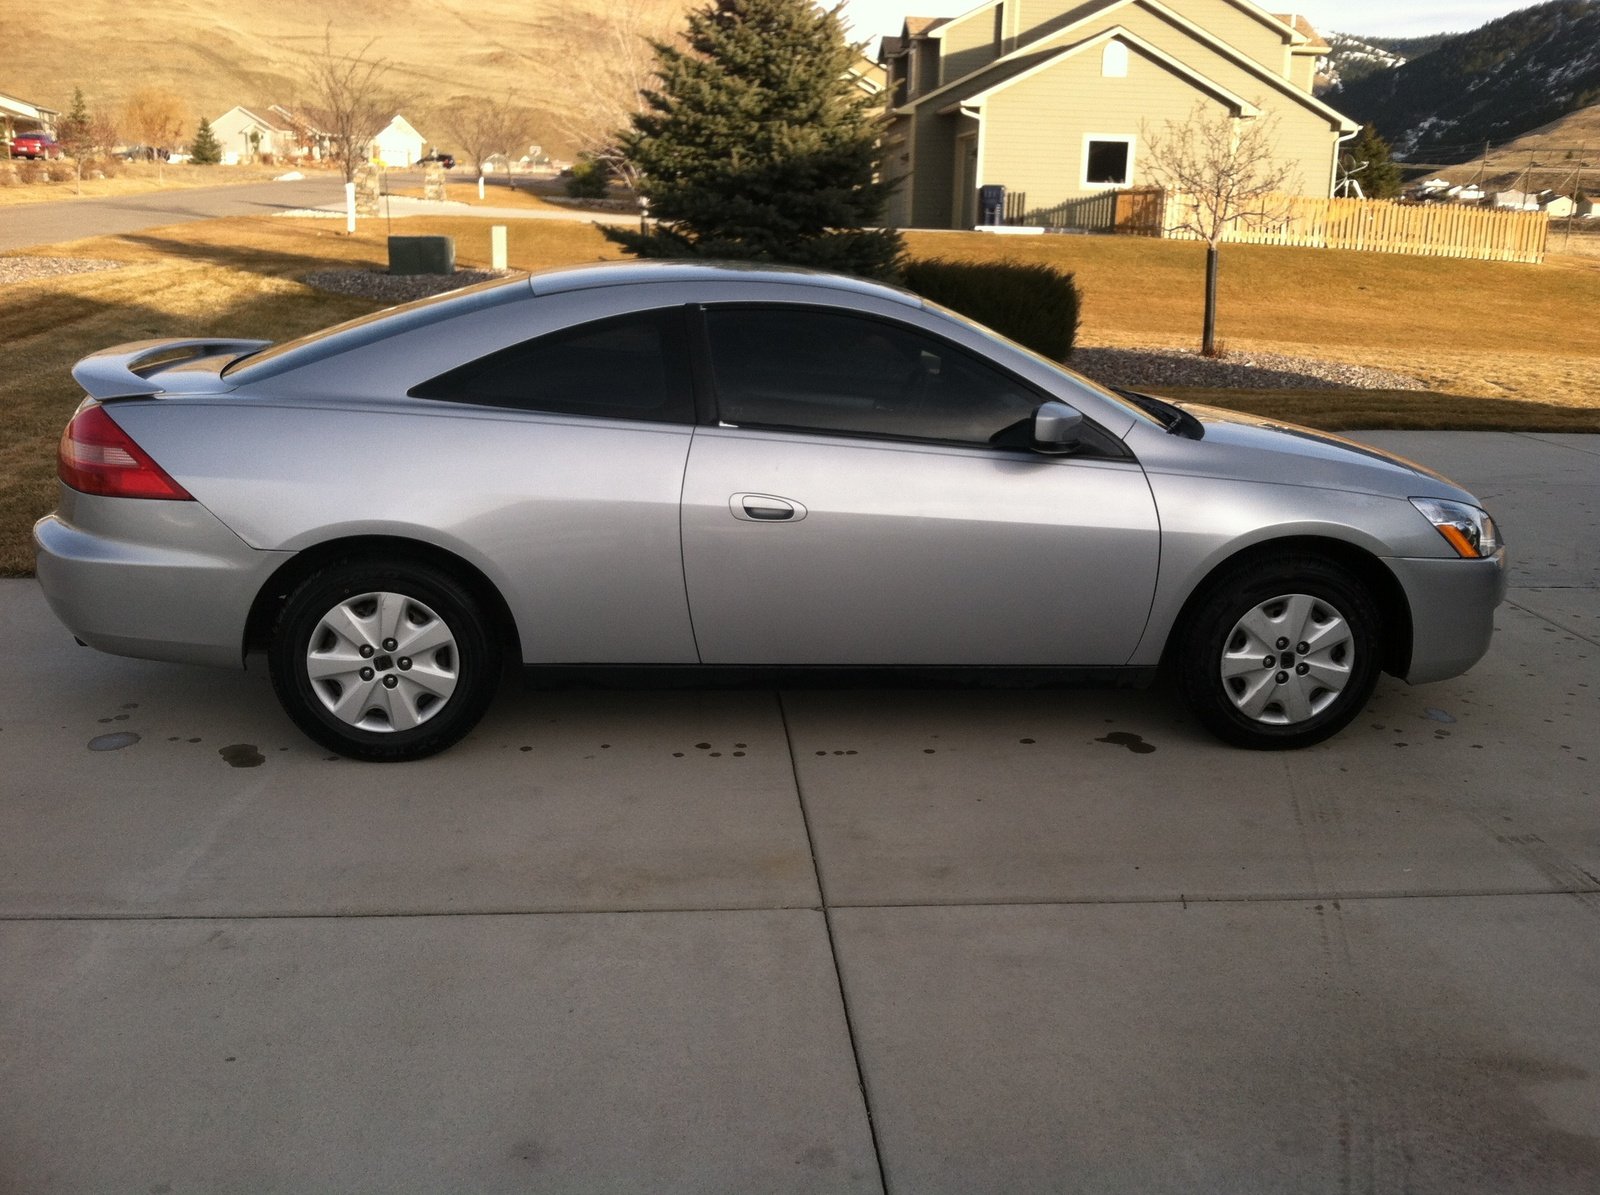 picture of 2003 honda accord lx coupe exterior. Black Bedroom Furniture Sets. Home Design Ideas